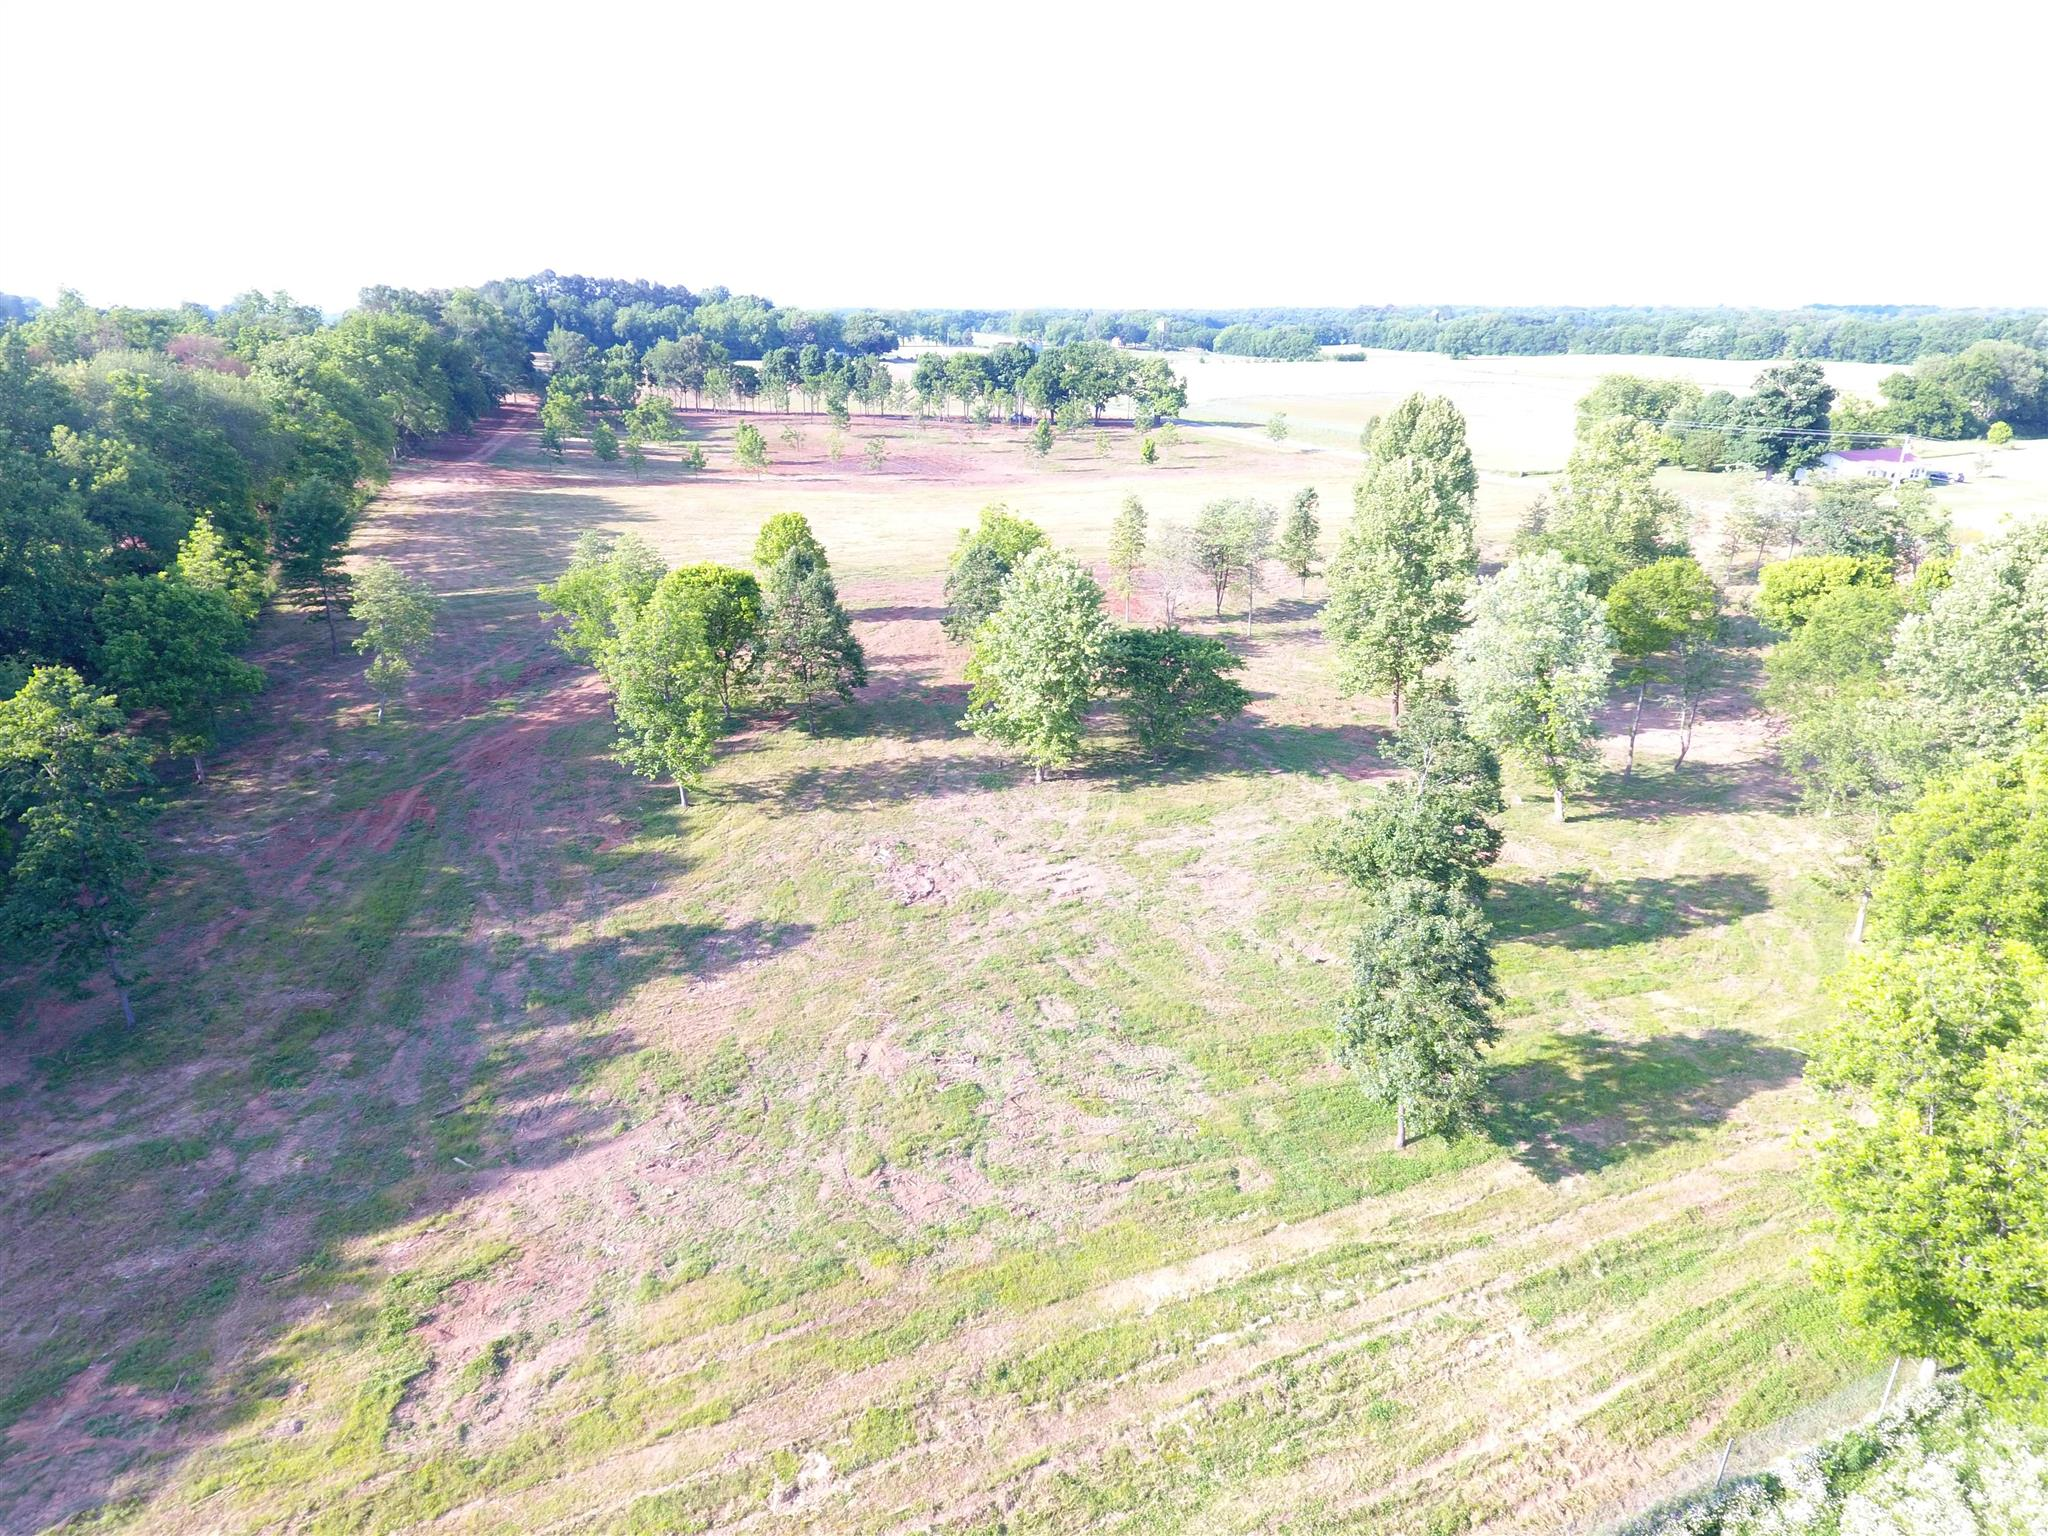 0 Owl Hollow Rd, Belvidere, TN 37306 - Belvidere, TN real estate listing